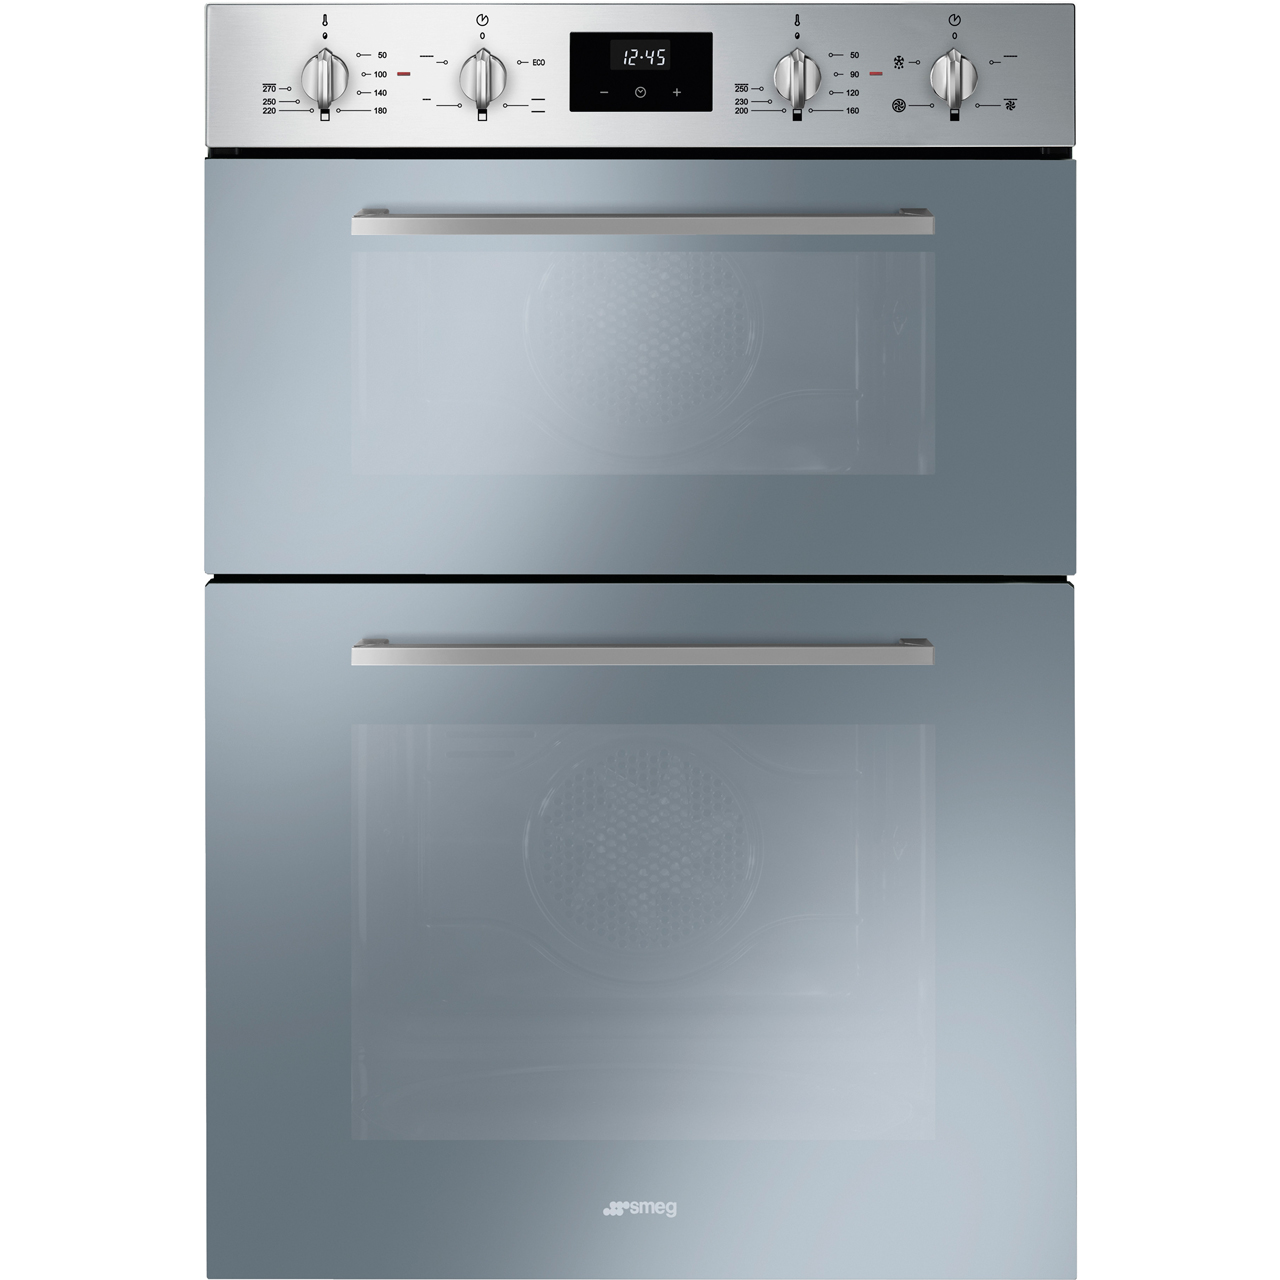 Smeg Cucina DOSF400S Built In Double Oven - Stainless Steel - A/B Rated